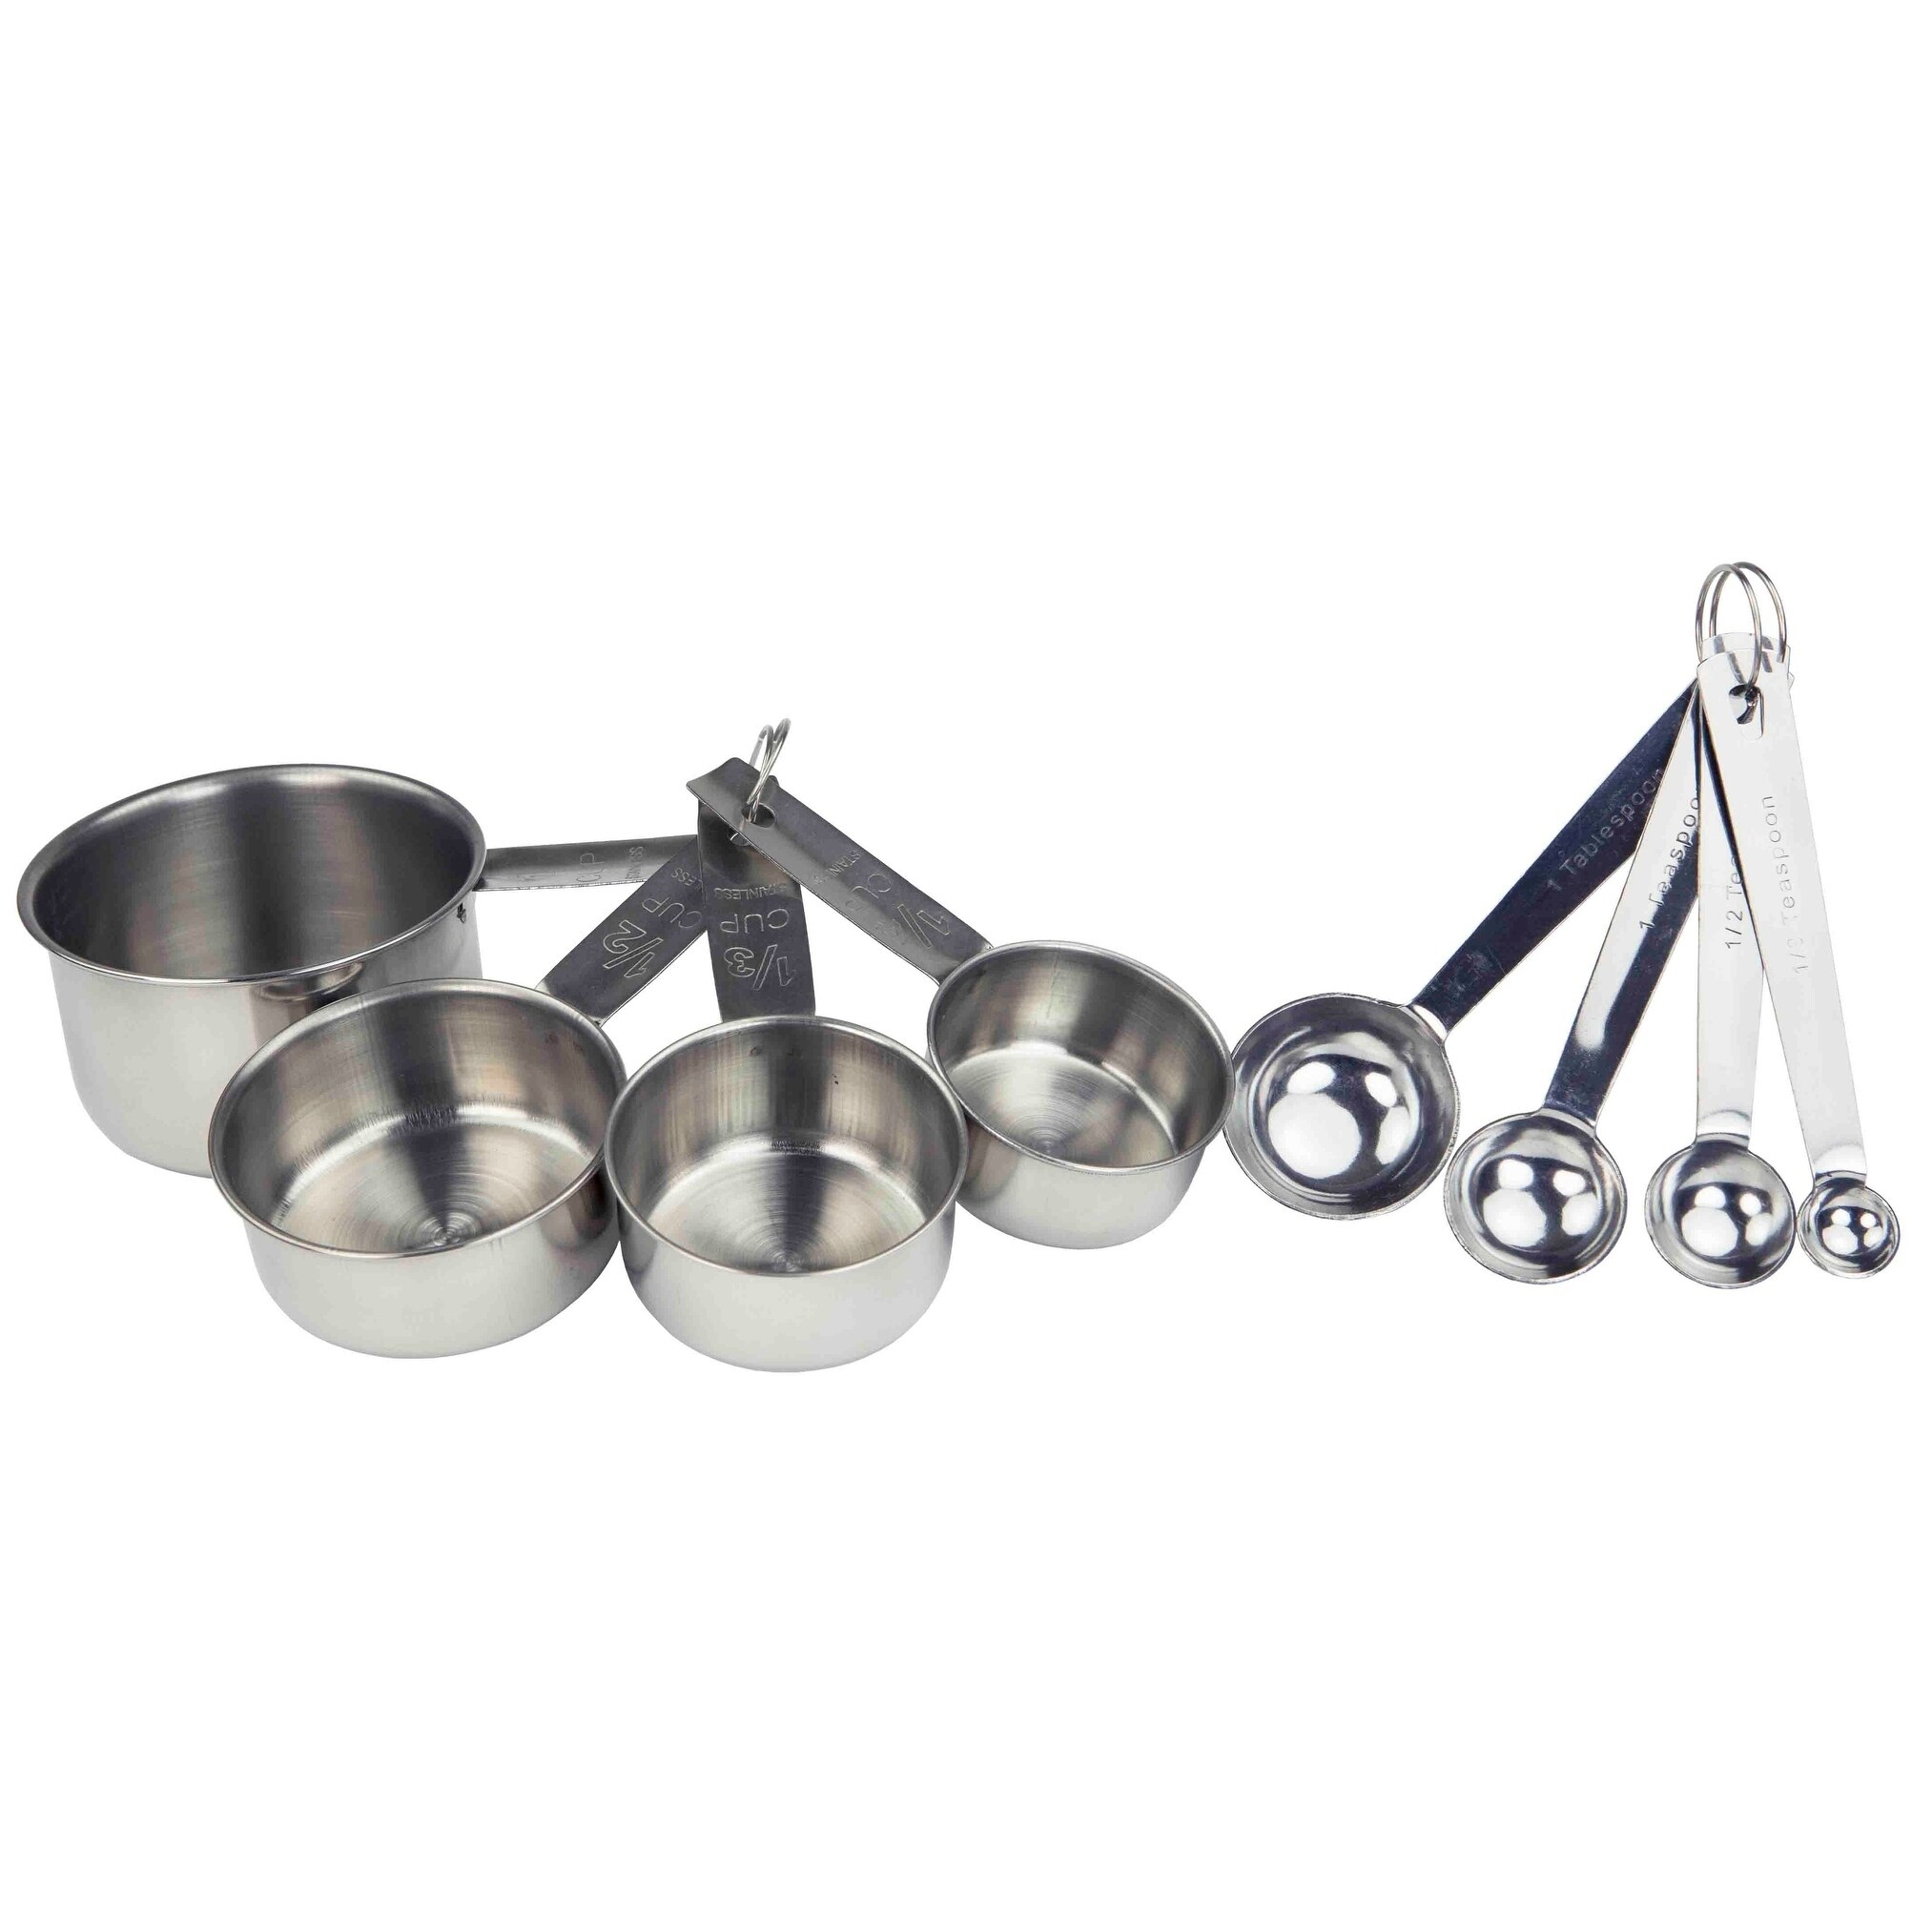 Stainless Steel Measuring Cups 8 Piece Heavy Duty Measuring Cups Set in 18//8 Steel with Ergonomic Handle